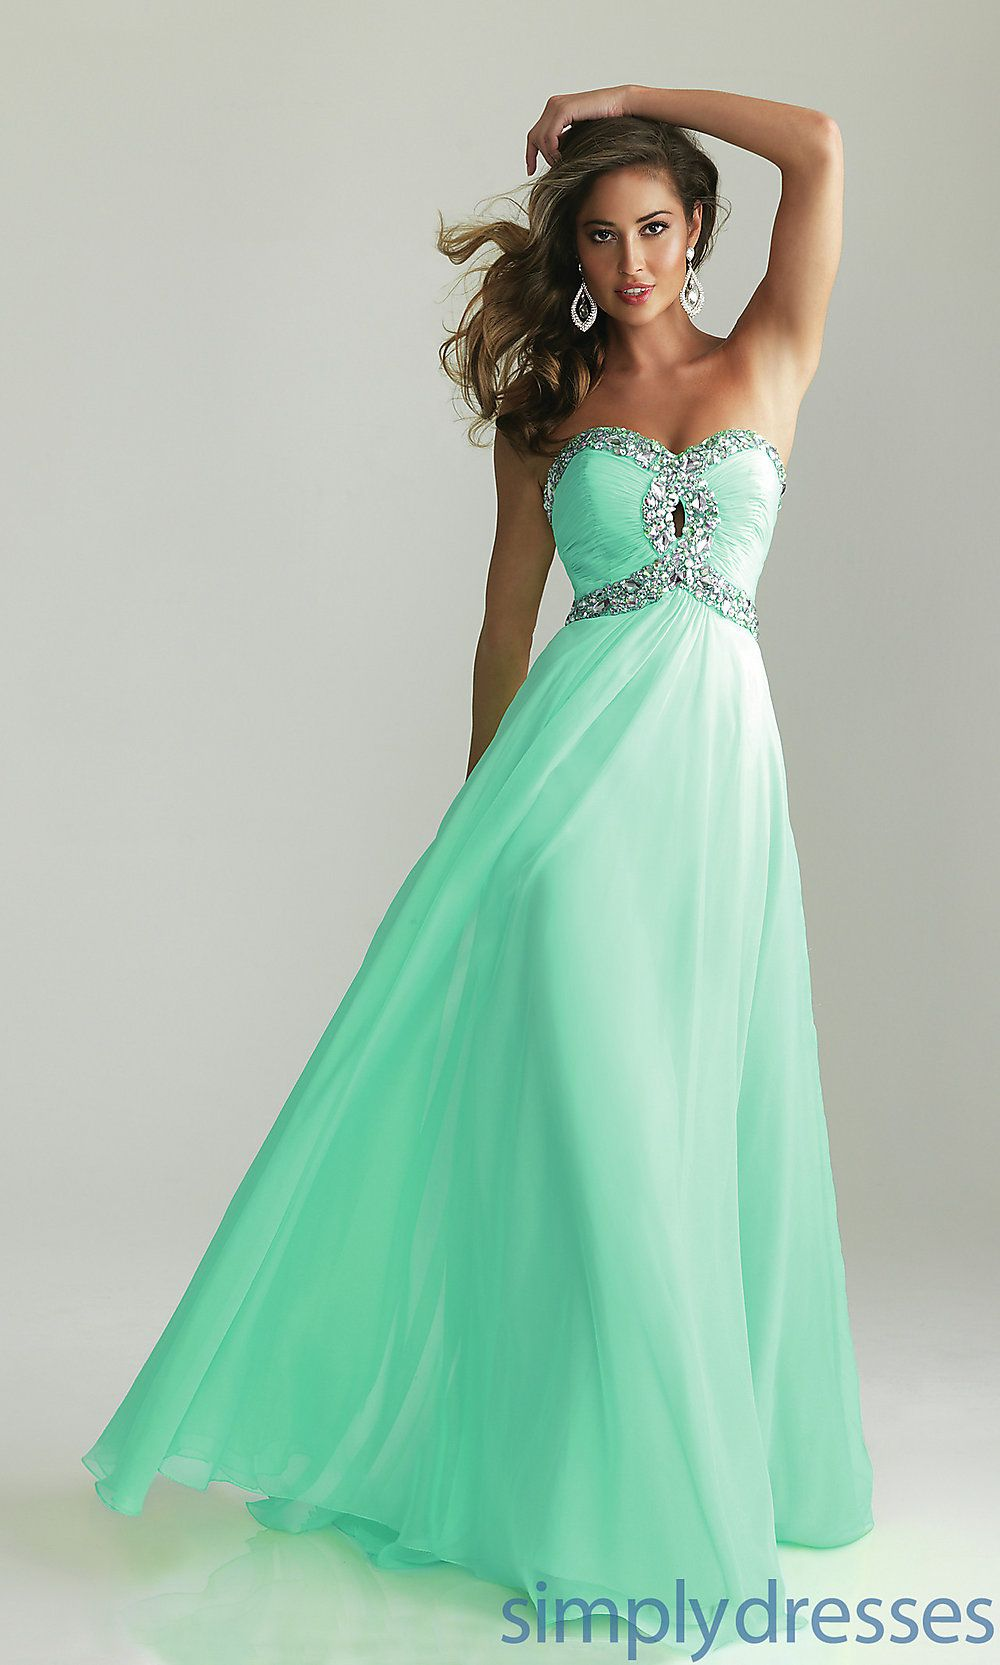 Beaded Strapless Sweetheart Night Moves Prom Gown   Prom, Puffy ...